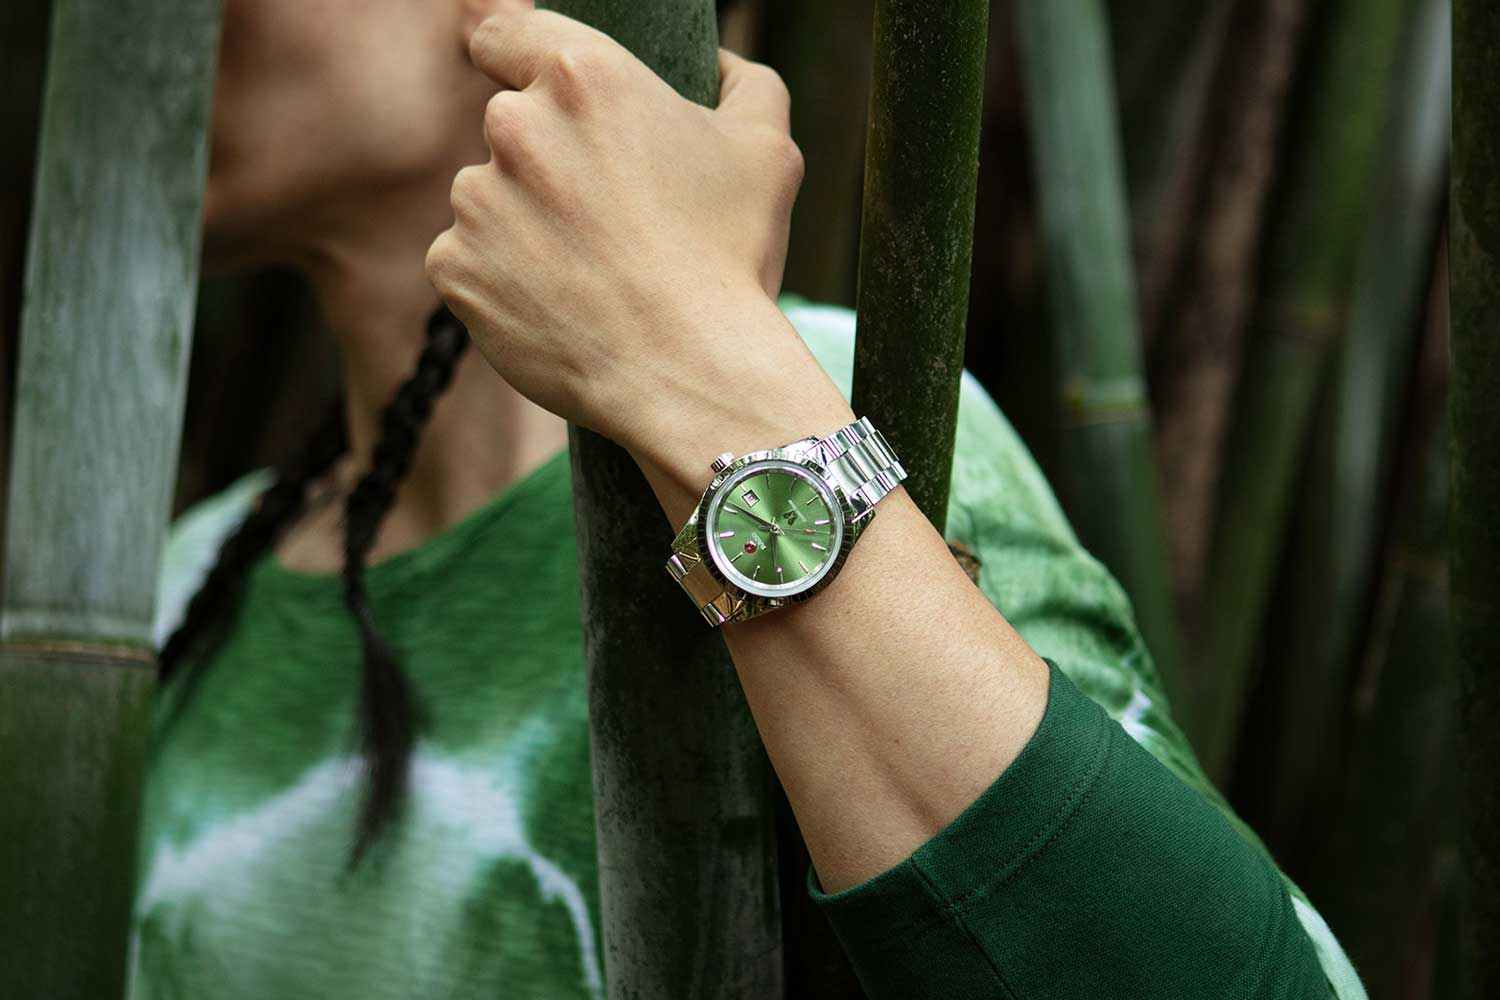 The Rado Golden Horse in green dial. The campaign for this year is wholly lifestyle and embracing of nature. Spot on.